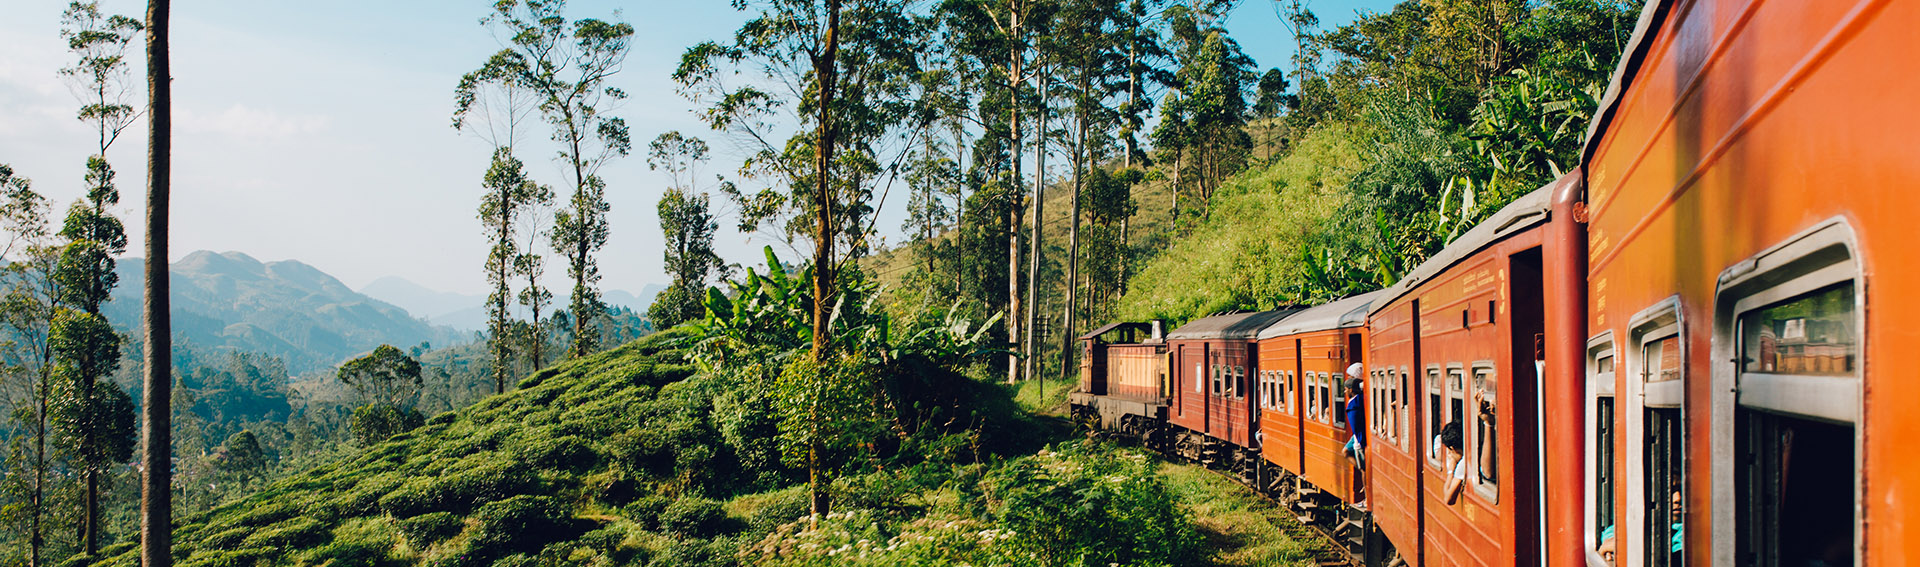 Sri Lanka, voyage en train, plantations de thé